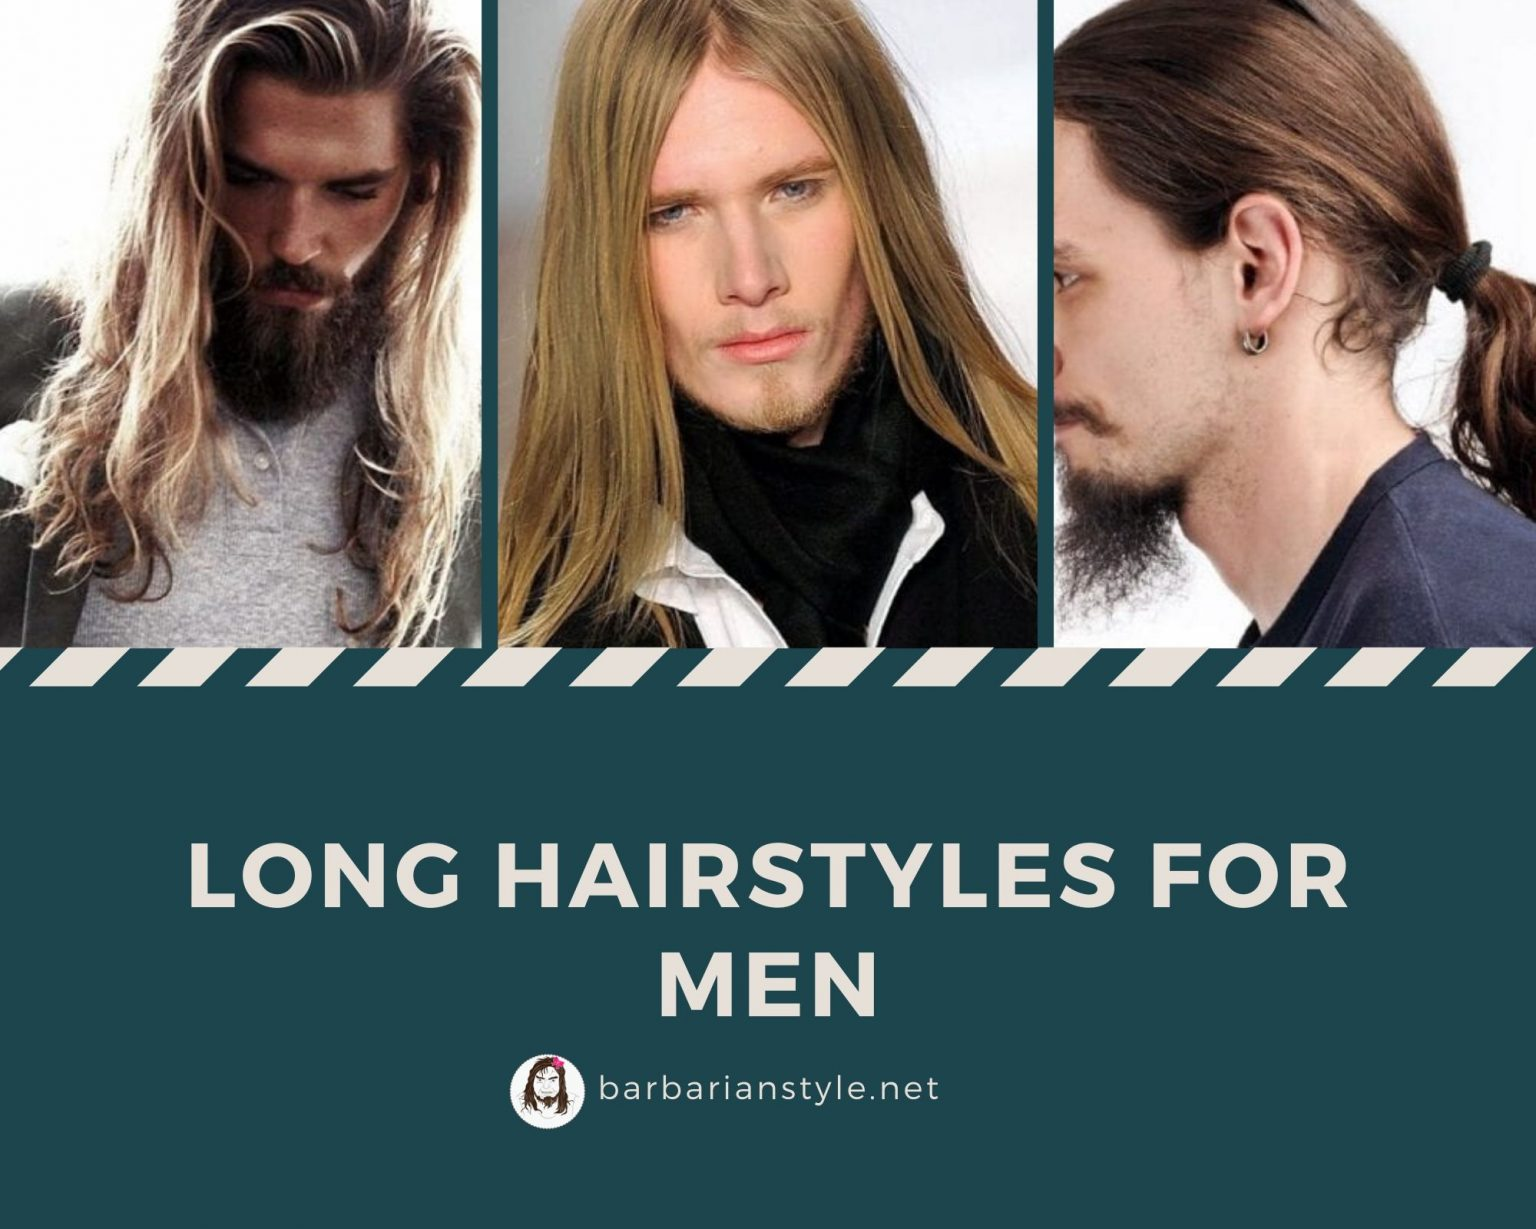 Long Hairstyles For Men To Look Impressive In 2020